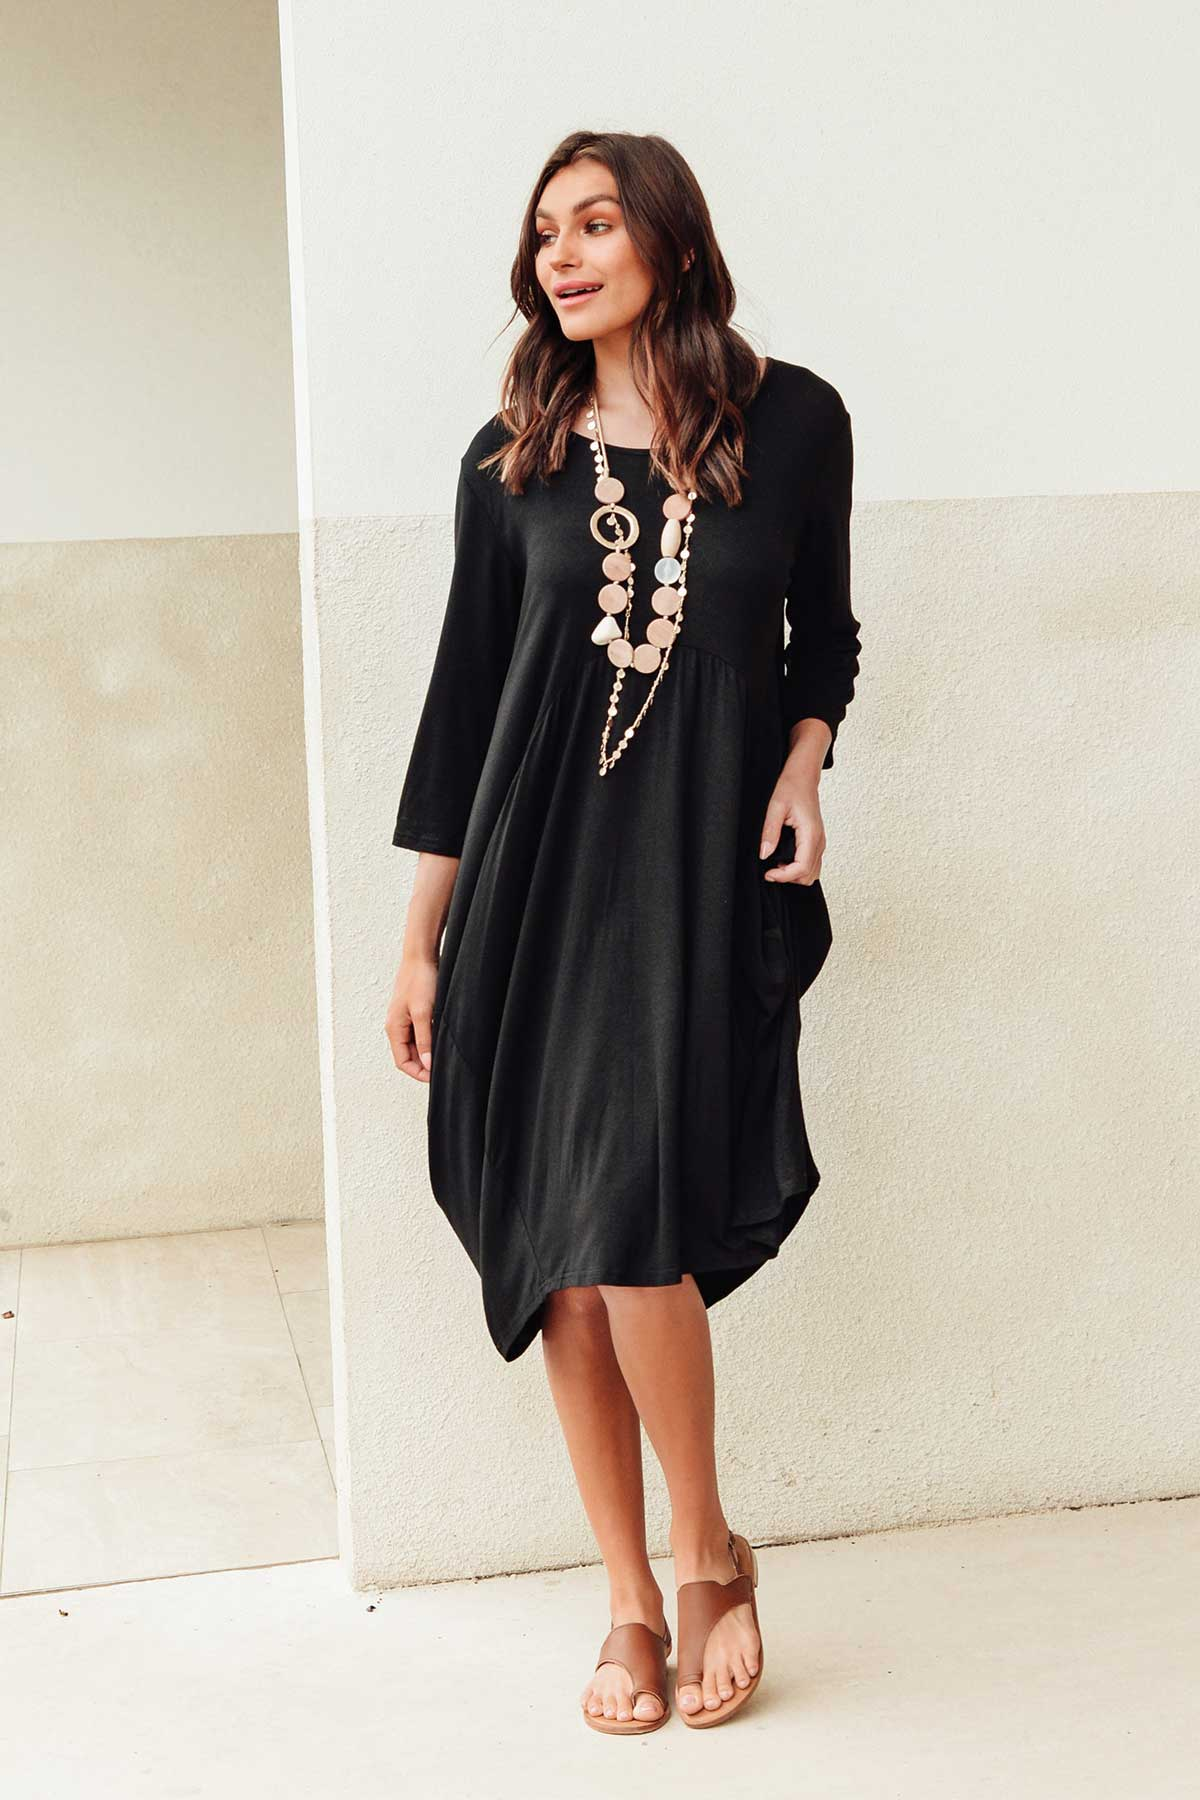 Coco Black Sleeved Dress